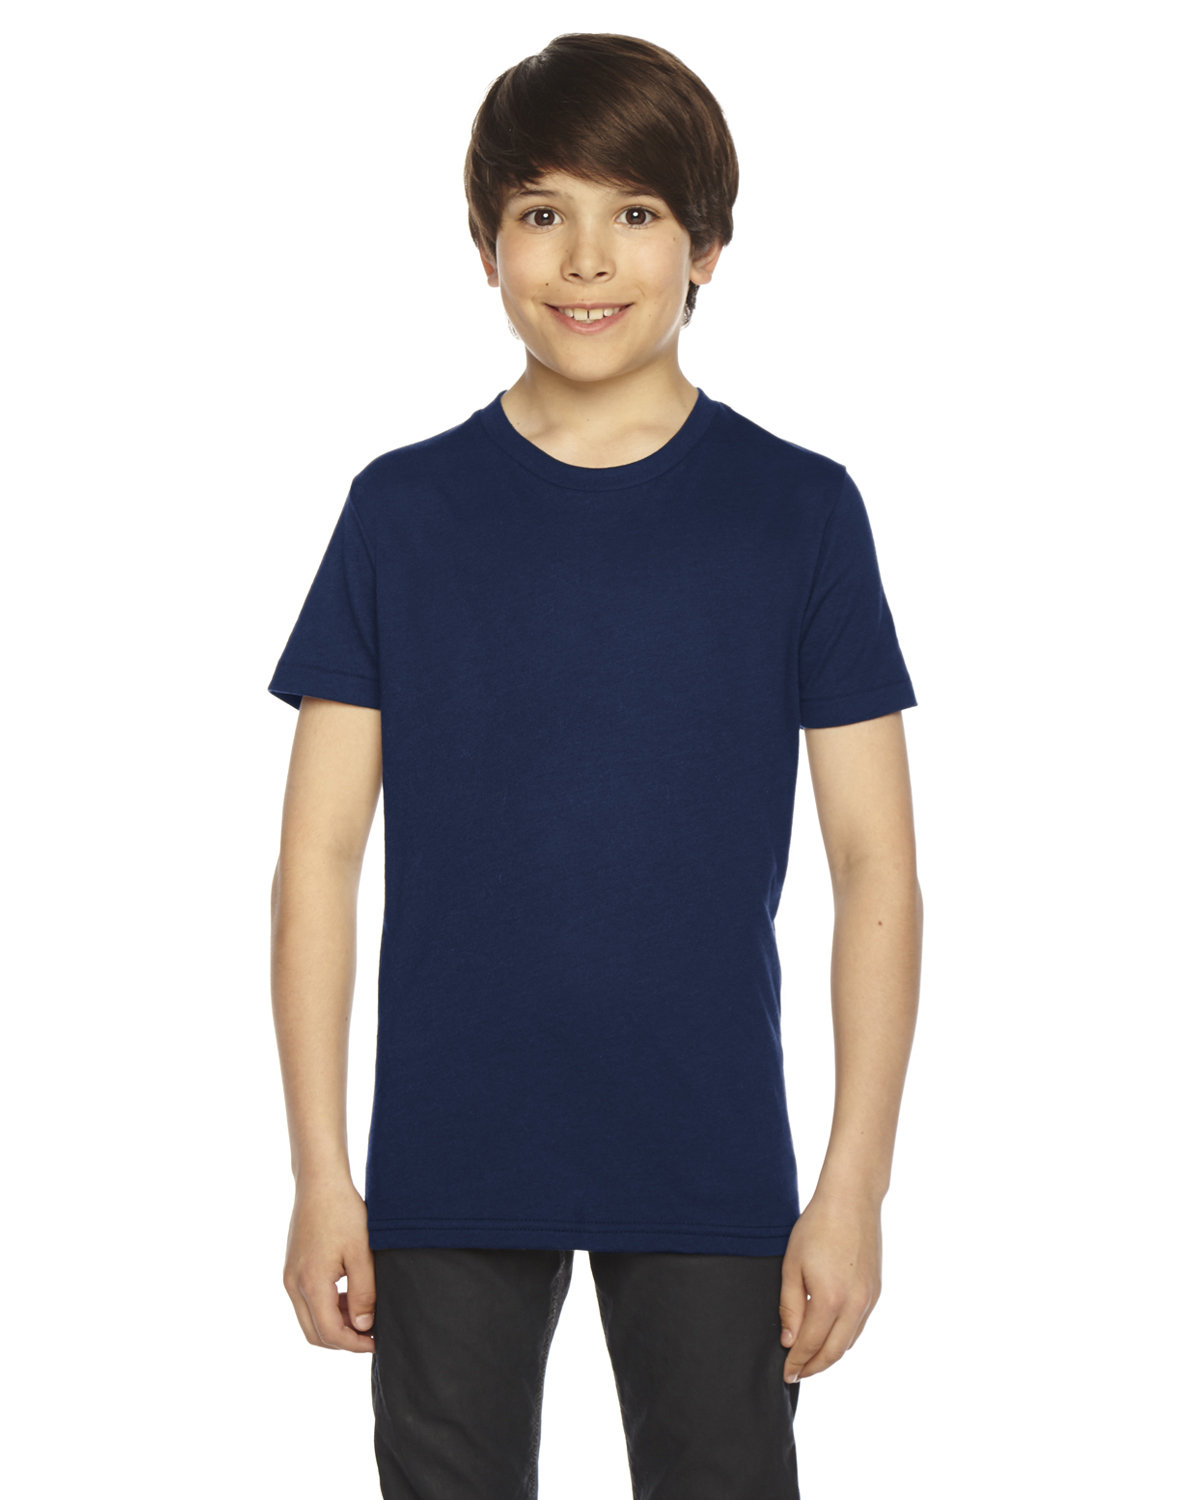 American Apparel Youth Poly-Cotton Short-Sleeve Crewneck NAVY